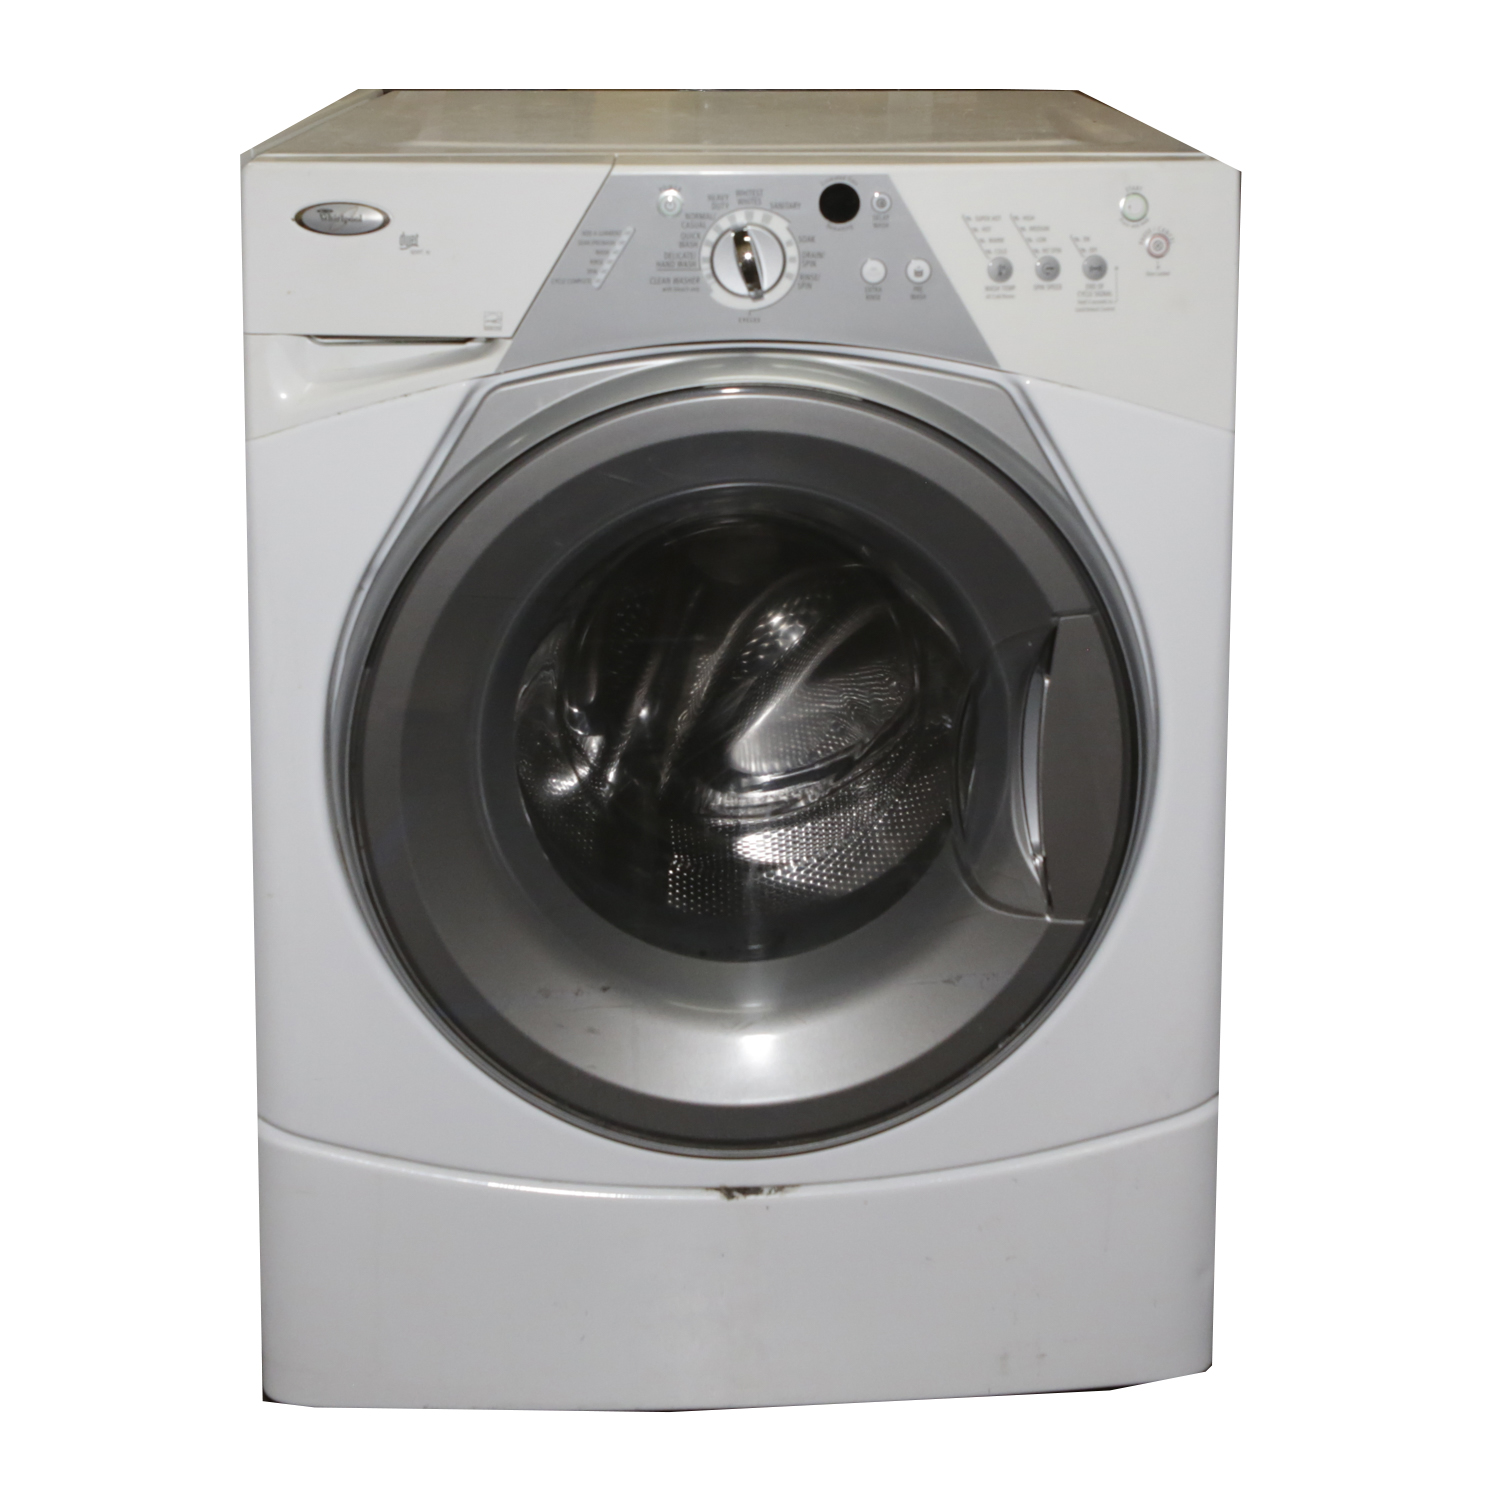 kenmore he2 plus. whirlpool duet sport washer kenmore he2 plus